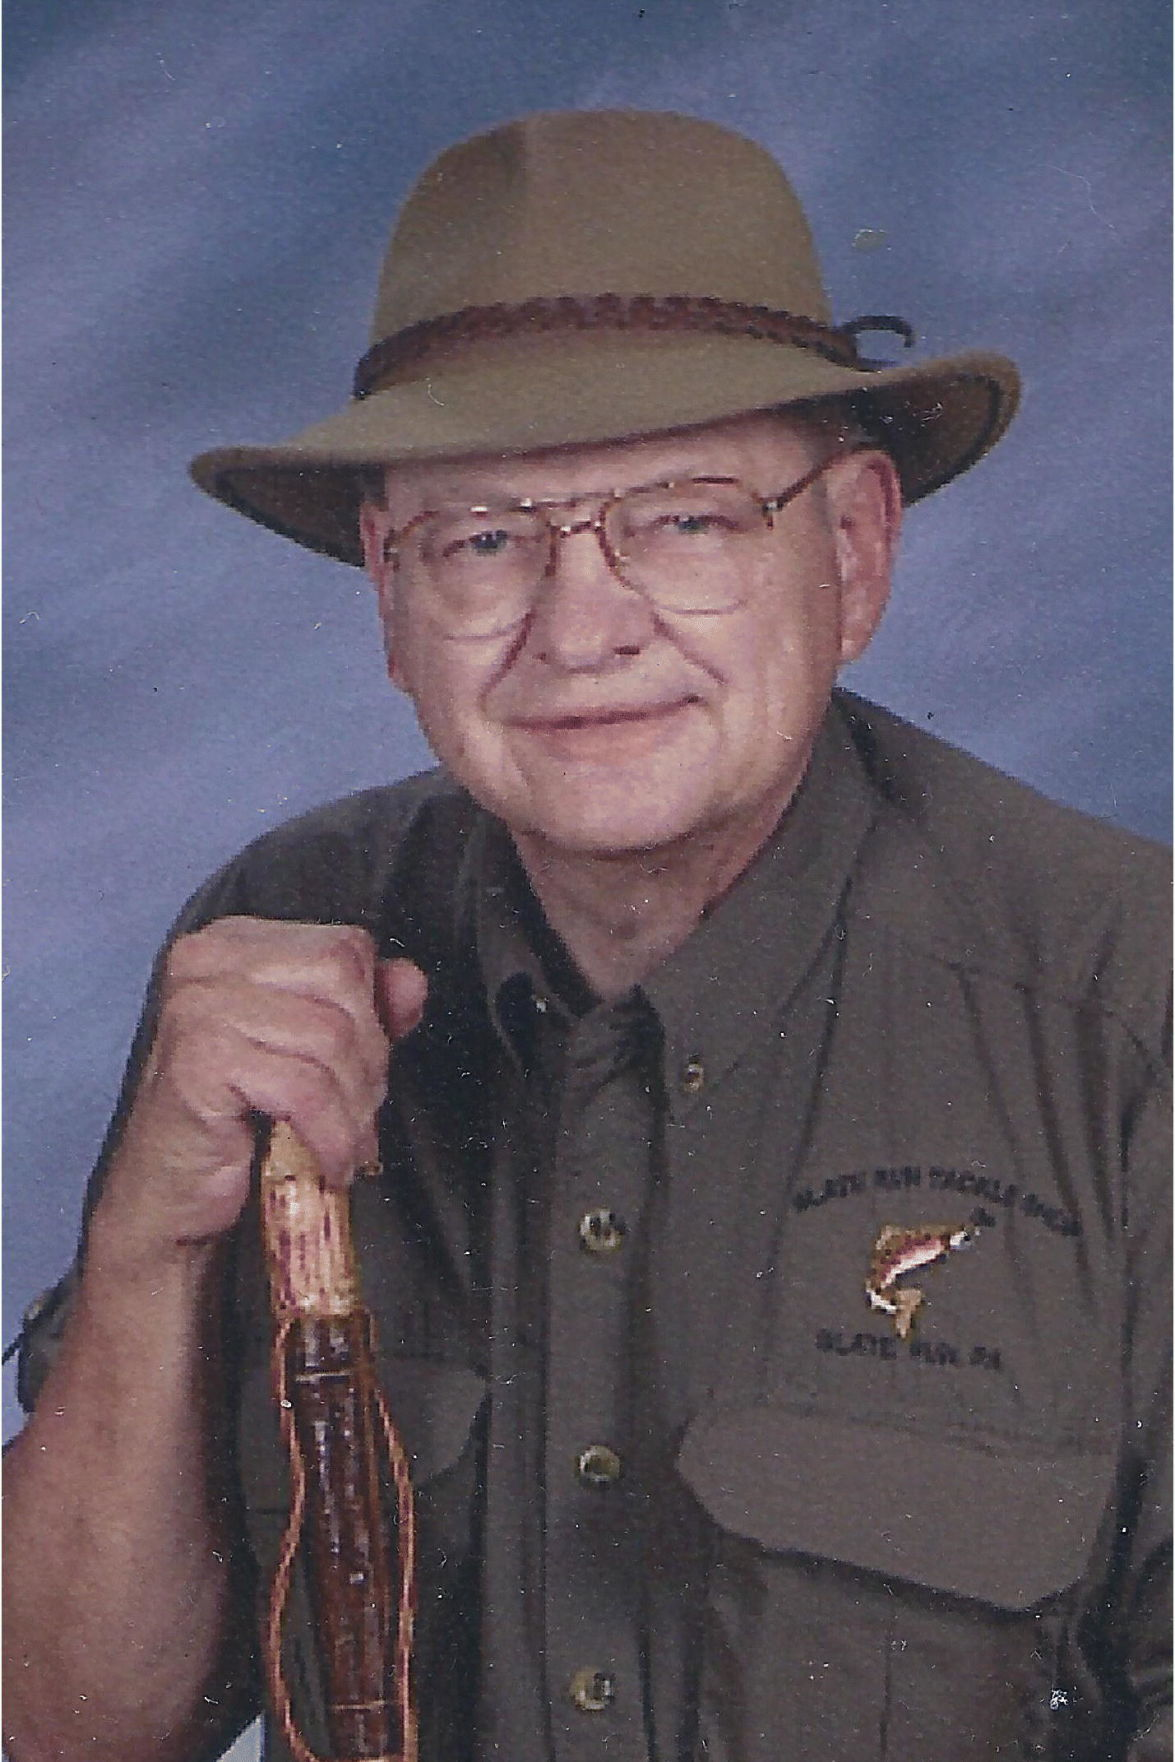 Ronald Clippinger